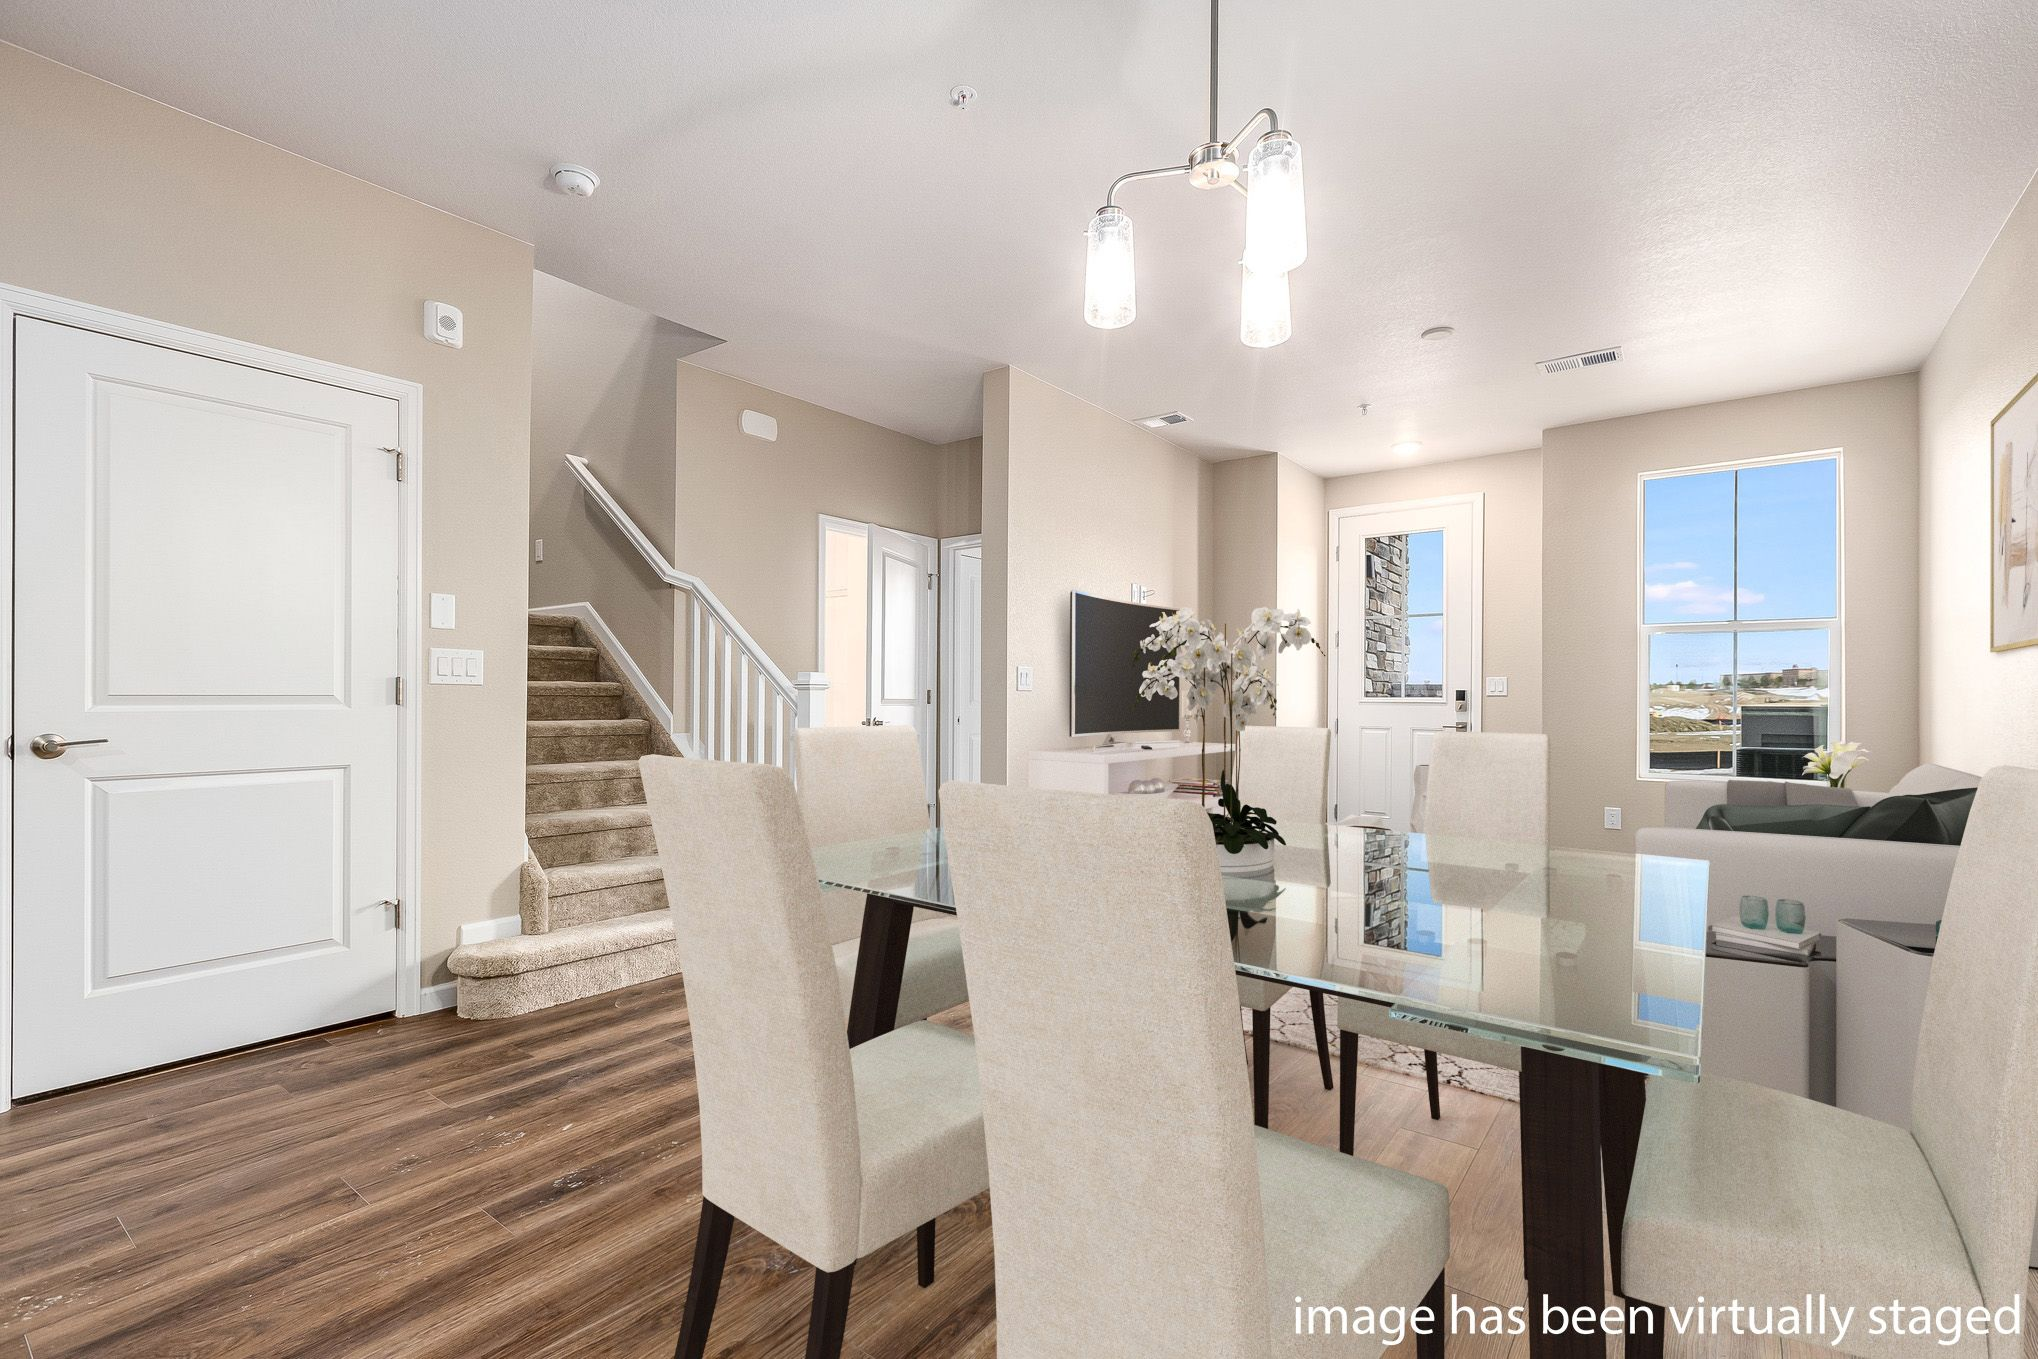 Living Area featured in the Callahan By Lokal Homes in Denver, CO